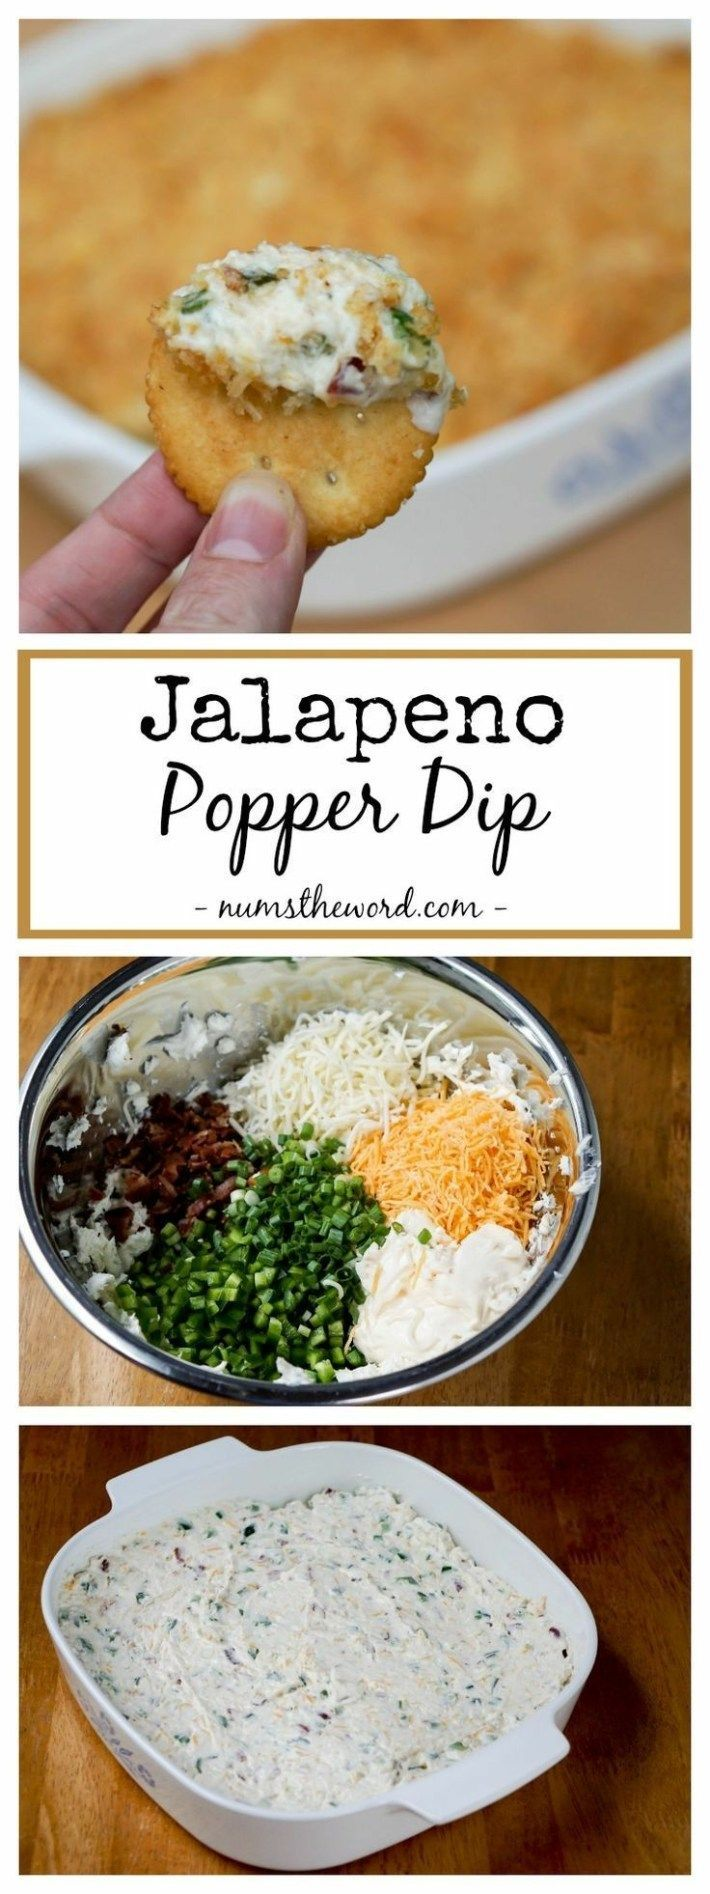 28 New Year's Eve Party Appetizers: Fun Snacks | Jalapeno ...